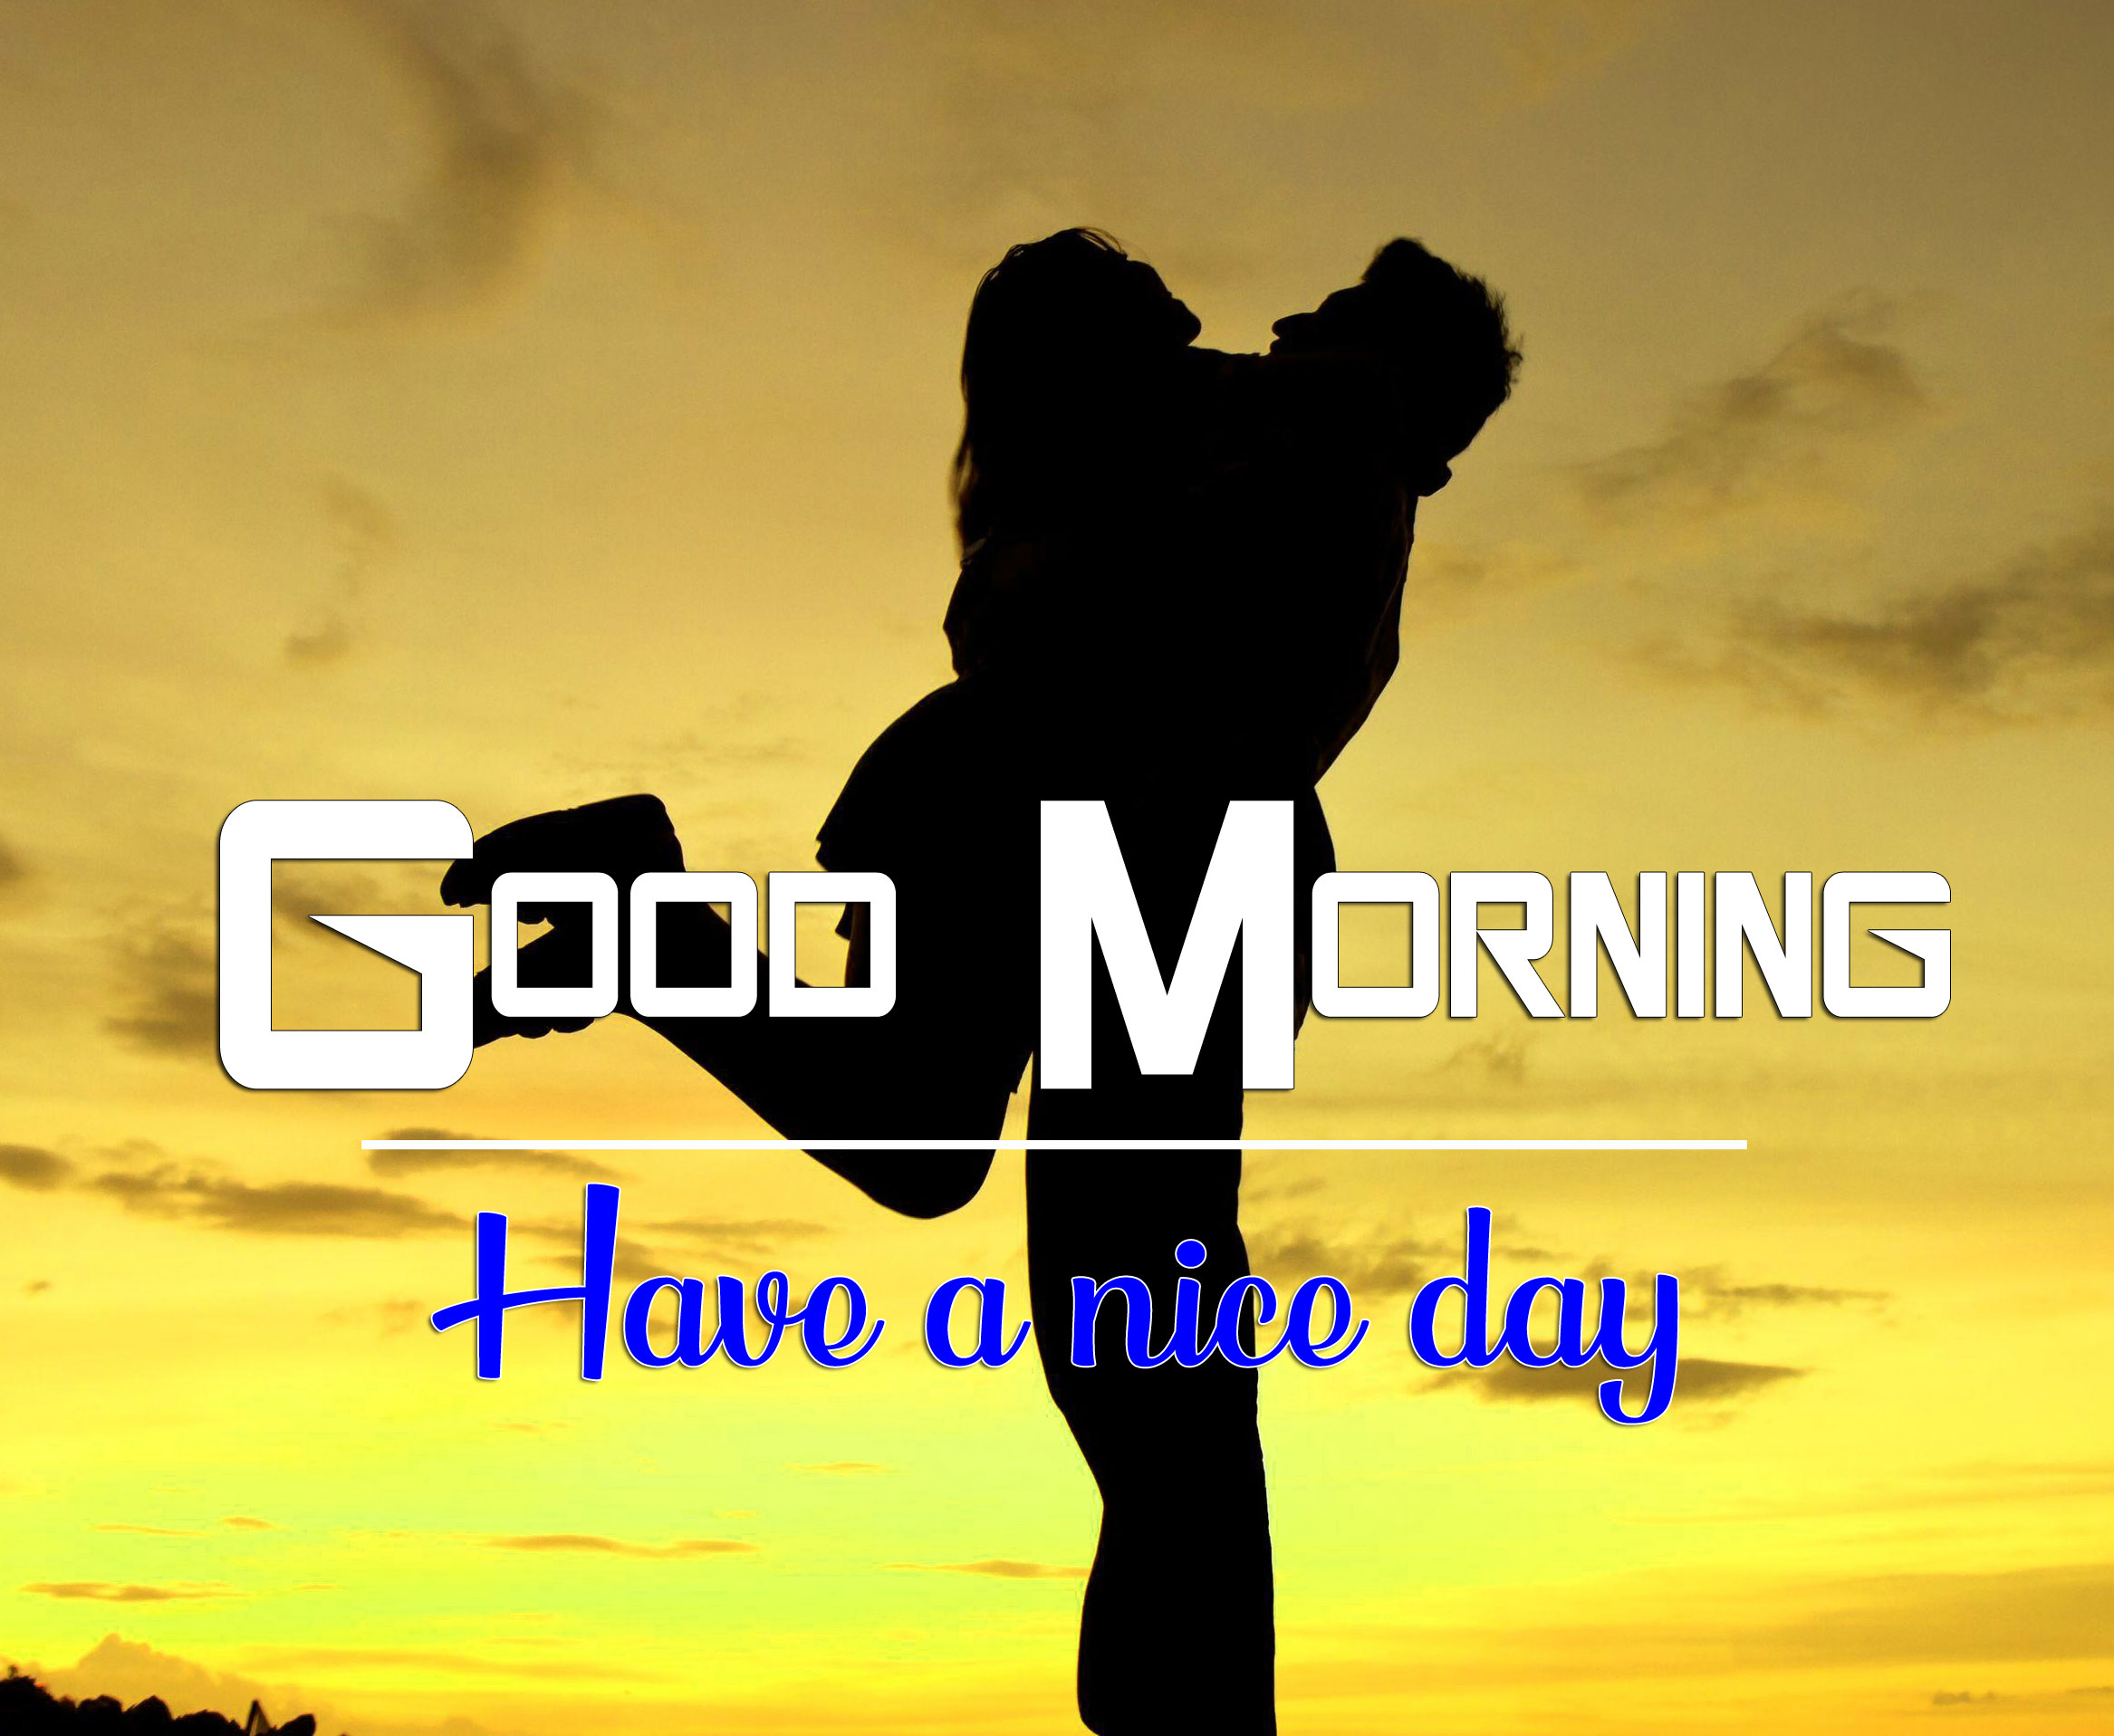 Top Quality Good Morning Wishes Images 2